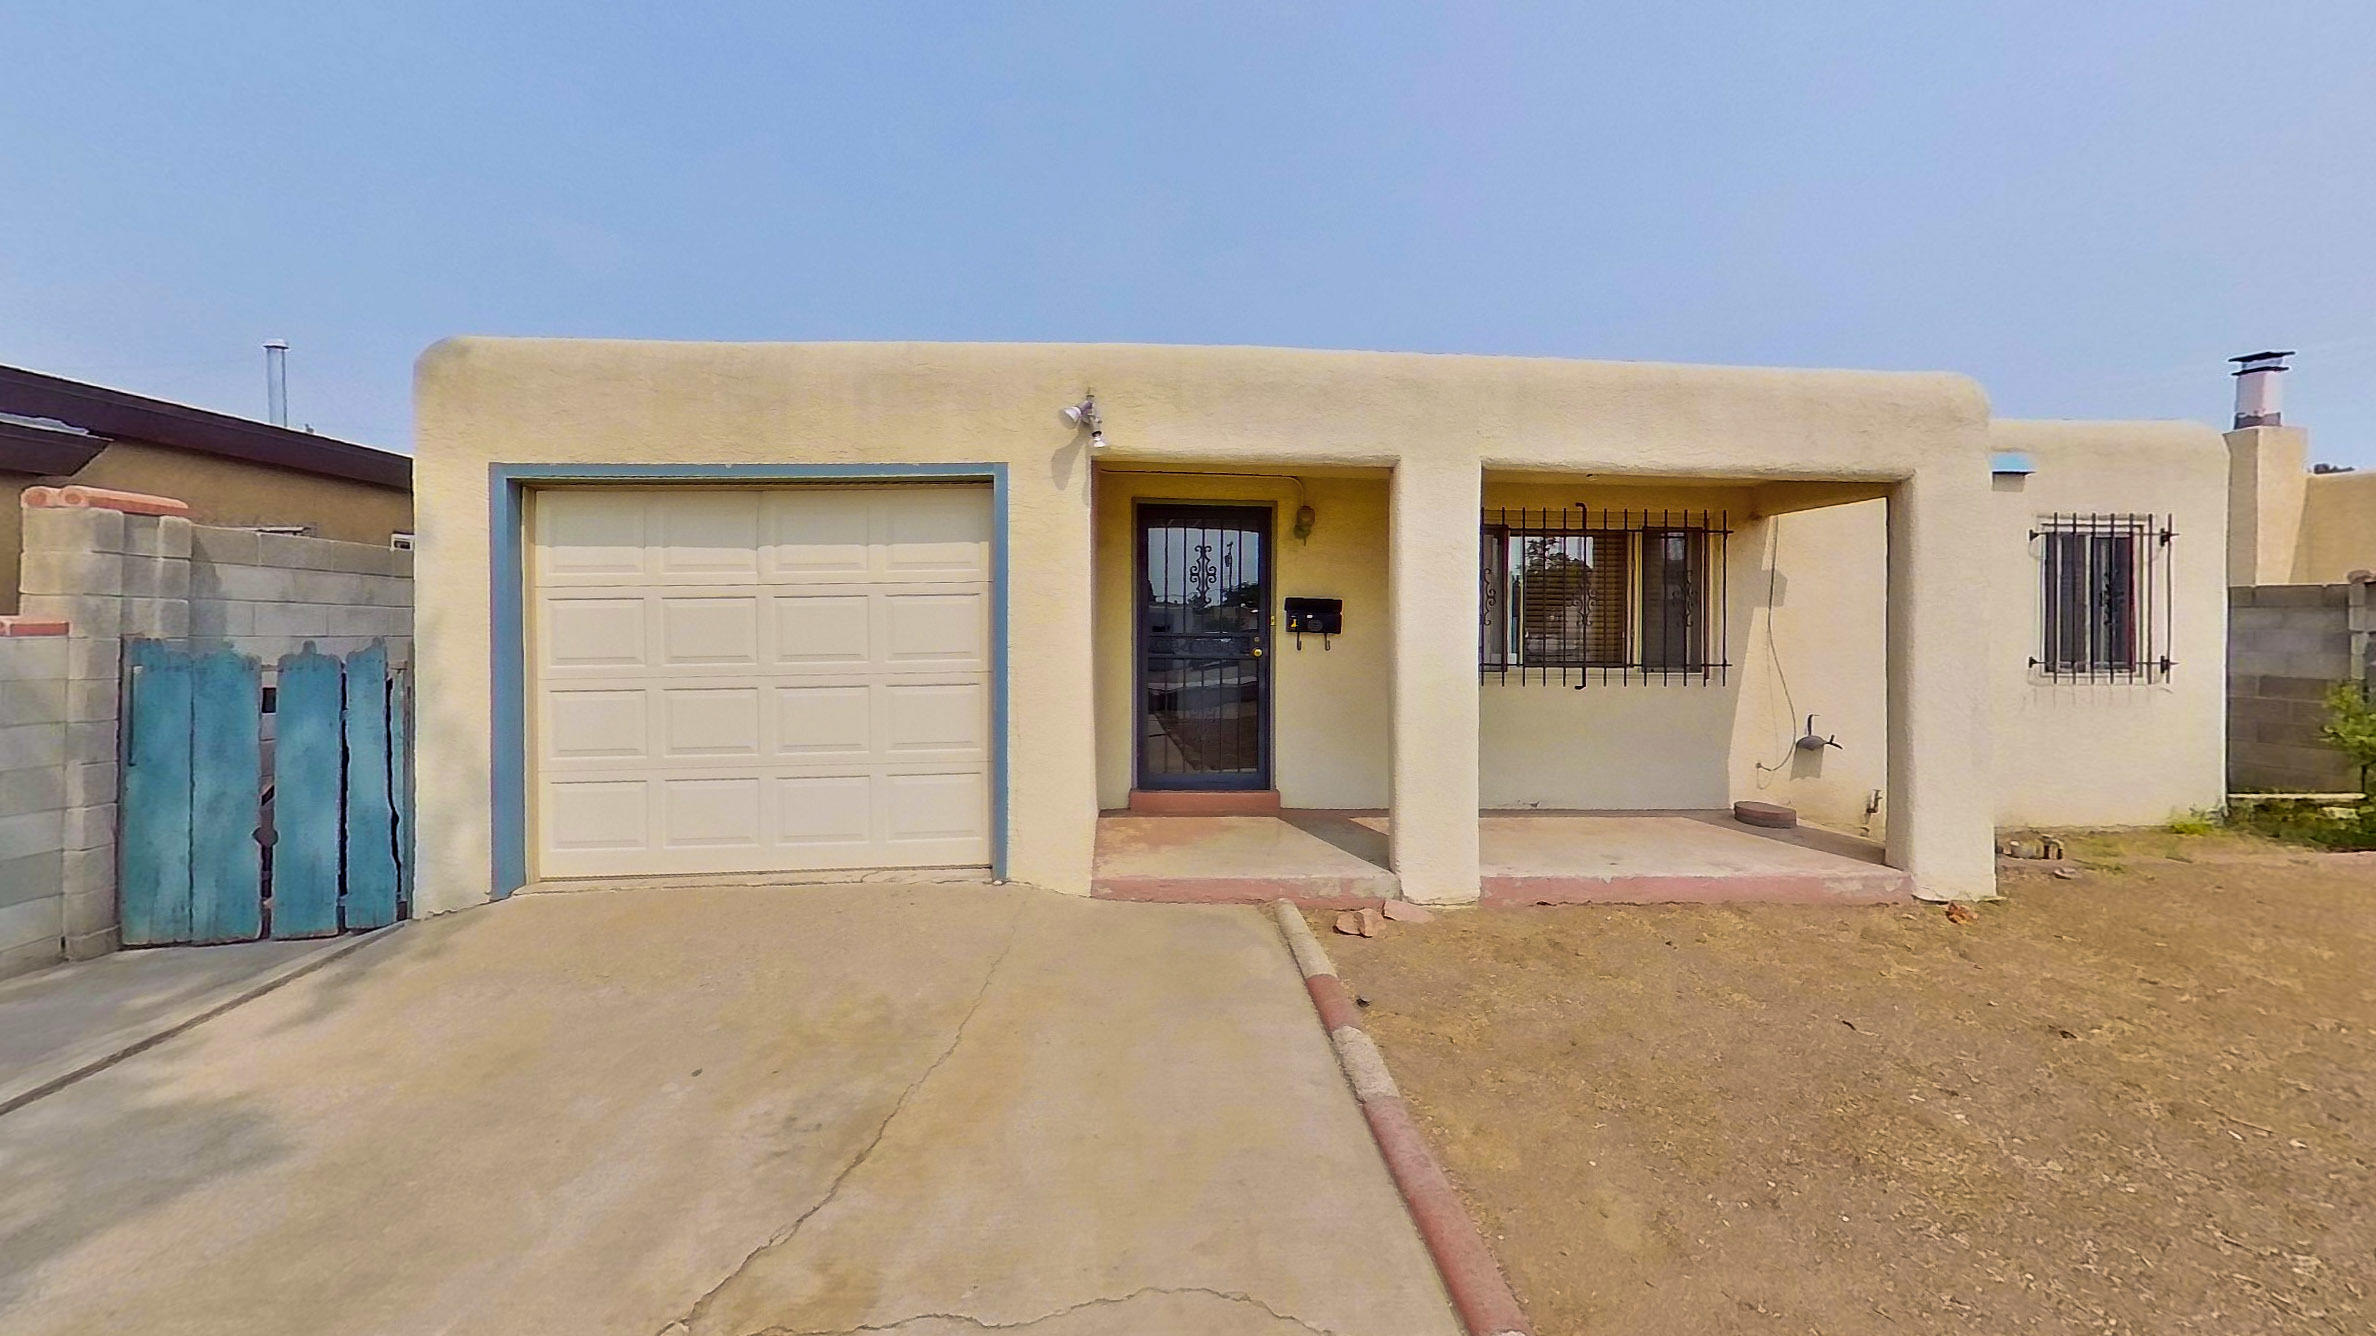 Adorable & Affordable!   Hardwood floors, cove ceilings in living room.  Large front and back yards.